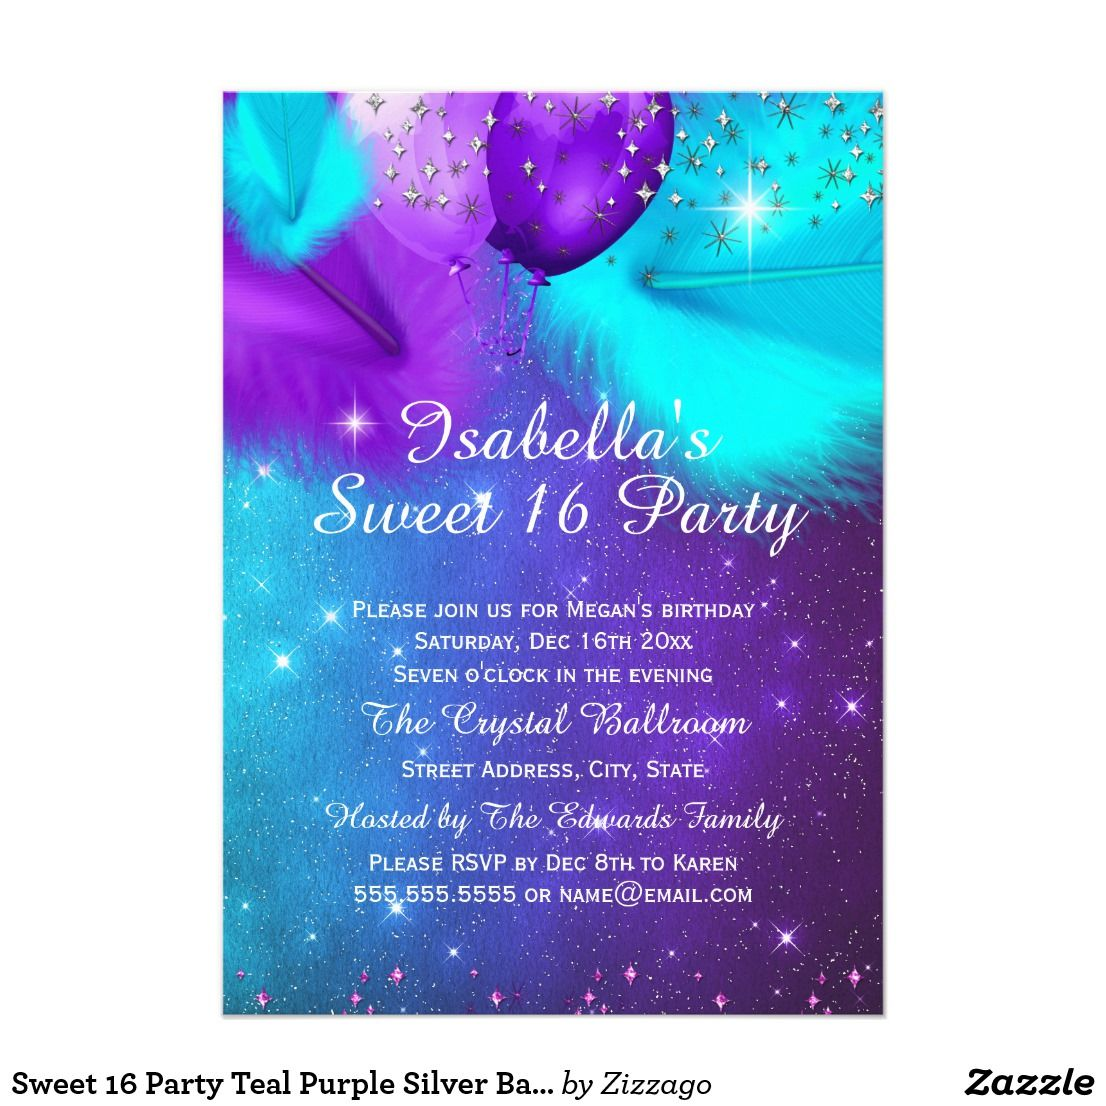 Awe Inspiring Sweet 16 Party Teal Purple Silver Balloons Cardteal Purple Personalised Birthday Cards Petedlily Jamesorg